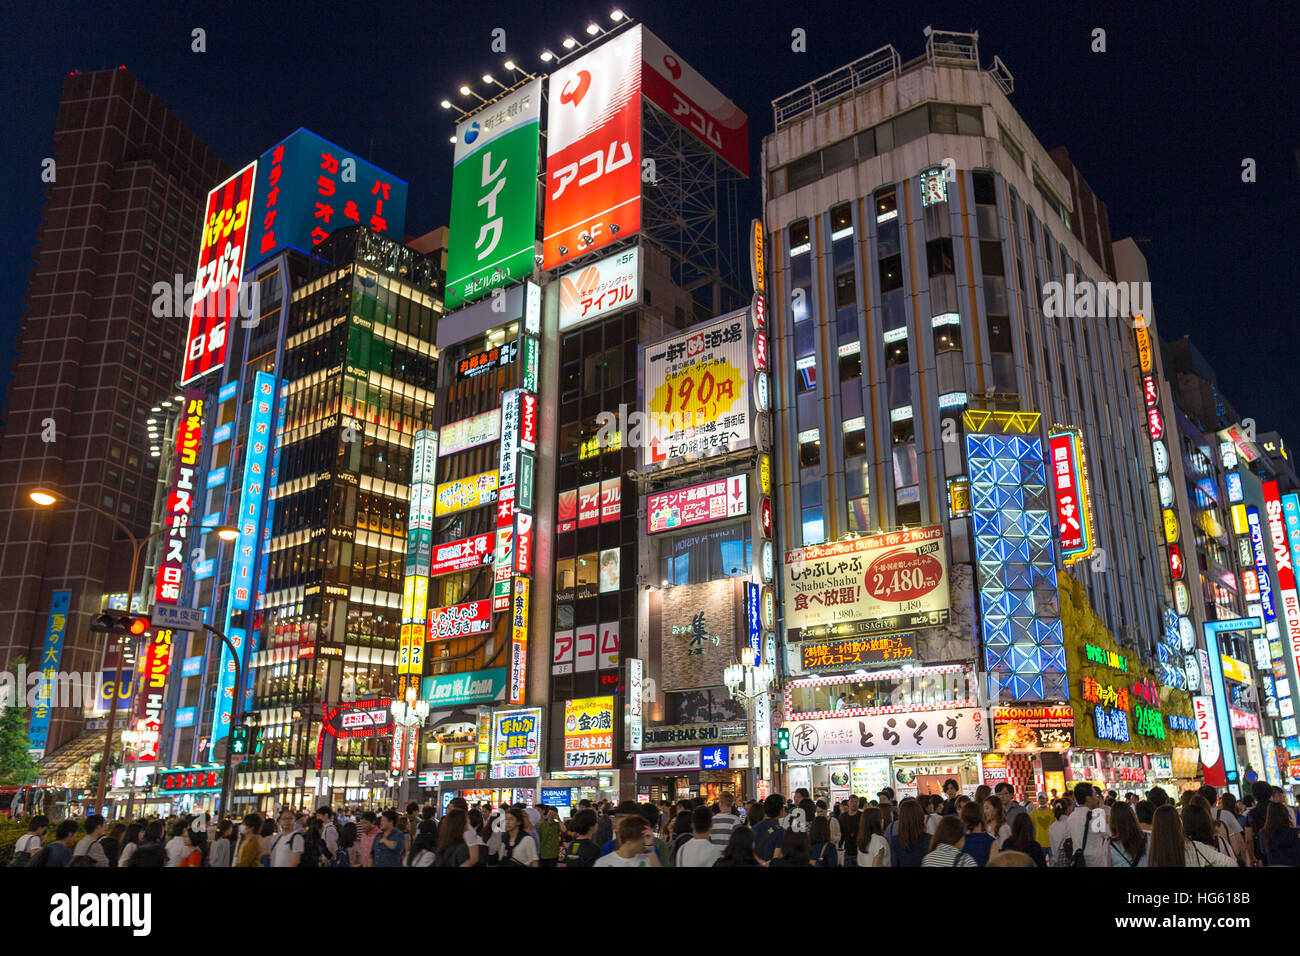 TOKYO - JUNE 11 : Entrance to Shinjuku's Kabuki-cho district JUNE 11, 2016 in Tokyo, JP. The area is a nightlife - Stock Image